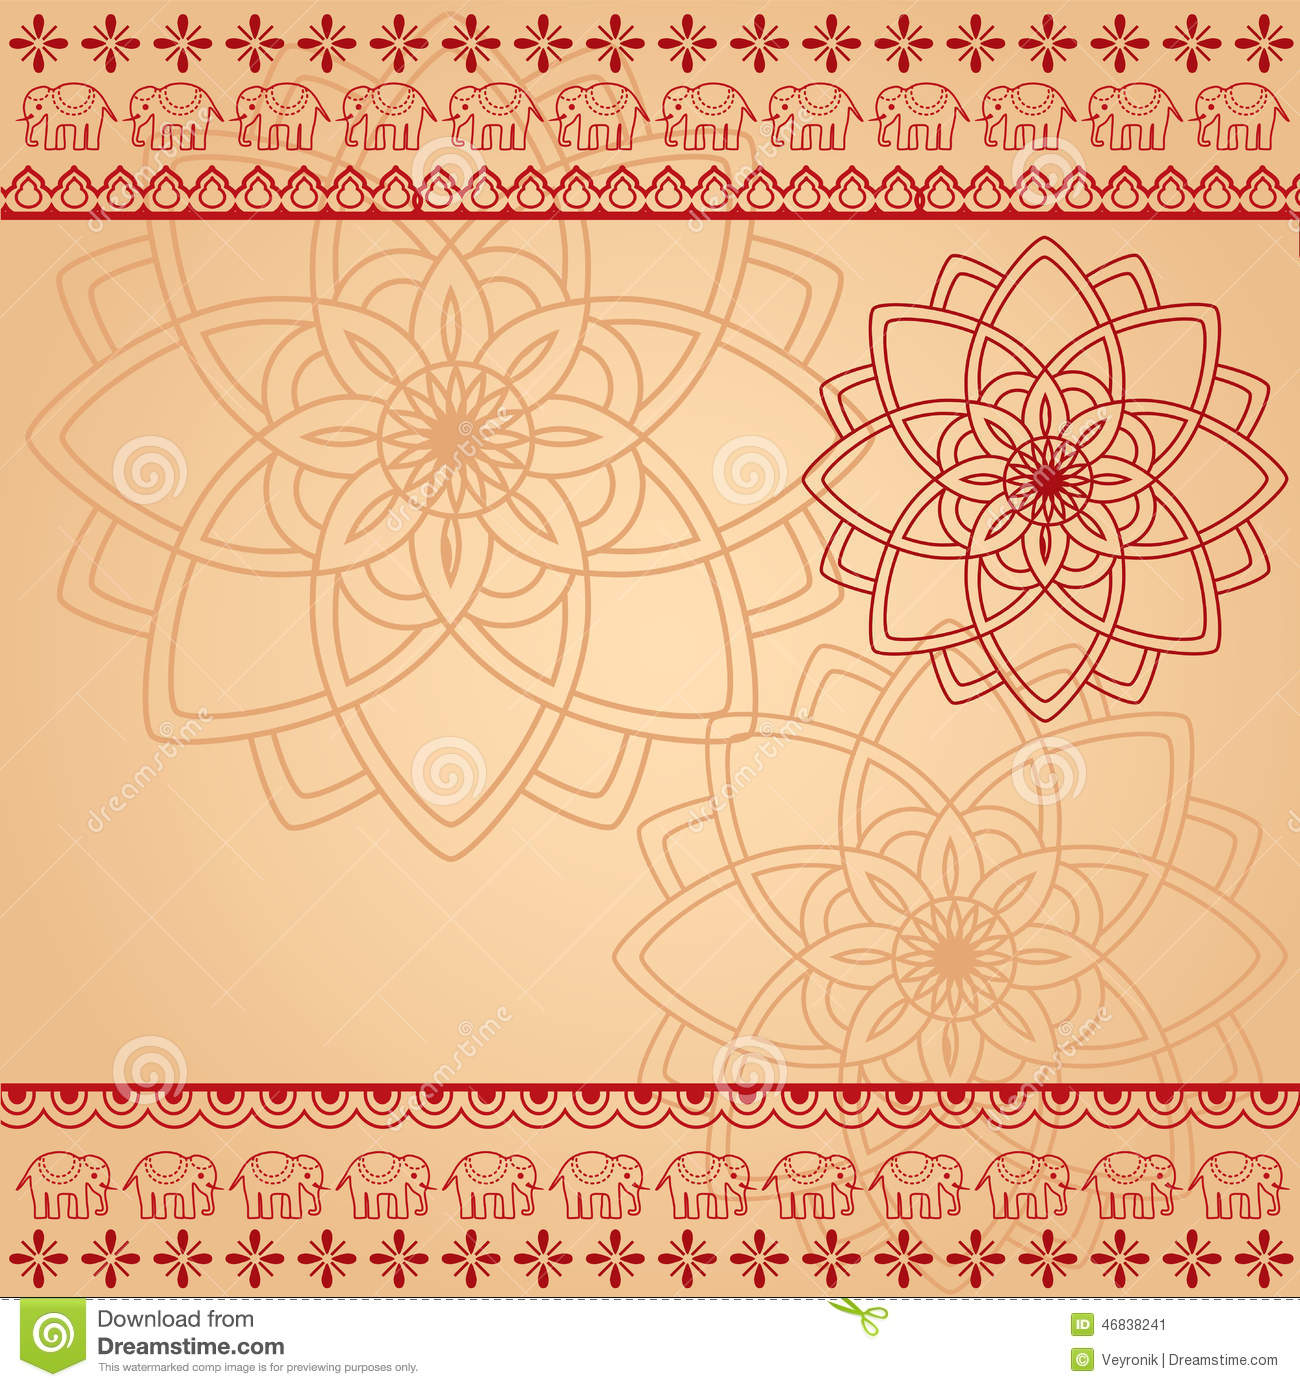 Durga Puja 3d Wallpaper Cream And Red Henna Mandala And Elephant Background Stock